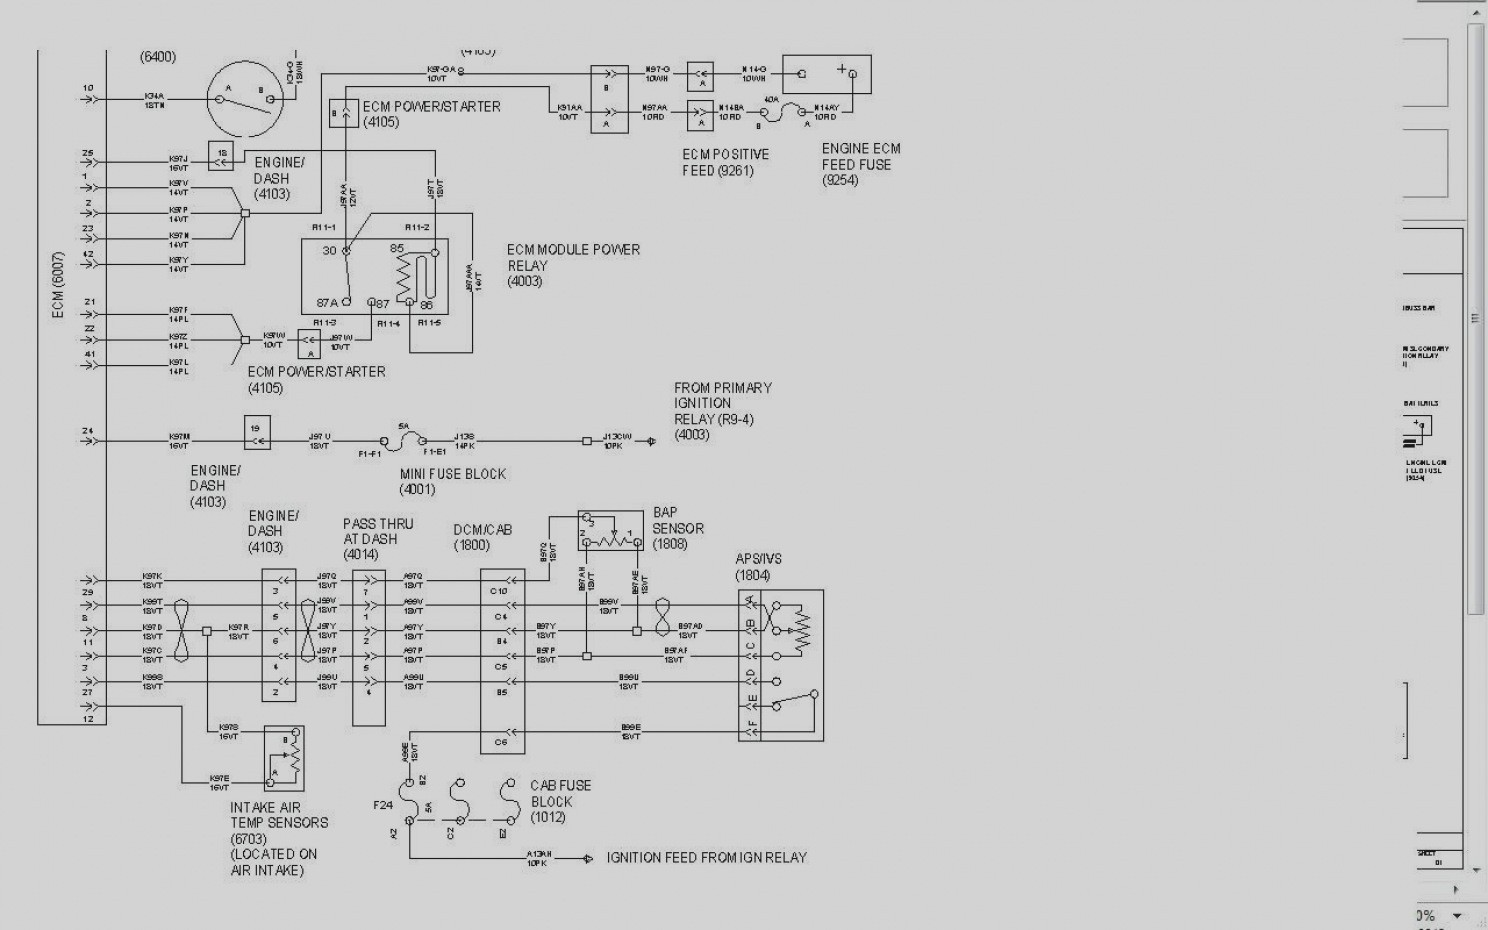 DIAGRAM] International Durastar 4300 Fuse Box Diagram FULL Version HD  Quality Box Diagram - EATONENGINEERING.LABORATOIRE-HERRLISHEIM.FRDiagram Database - laboratoire-herrlisheim.fr